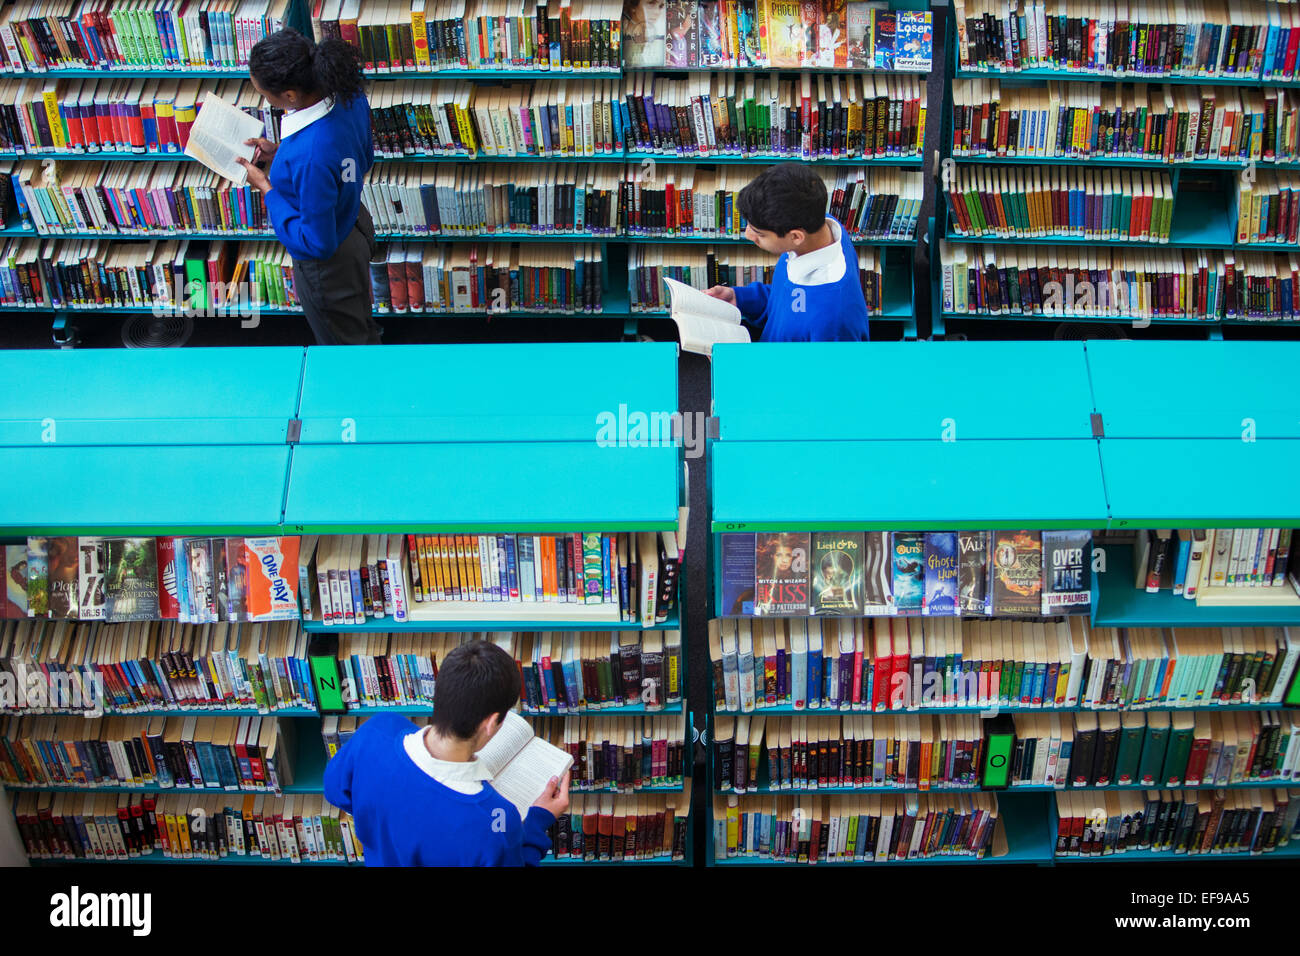 Elevated view of high school students browsing books in library - Stock Image